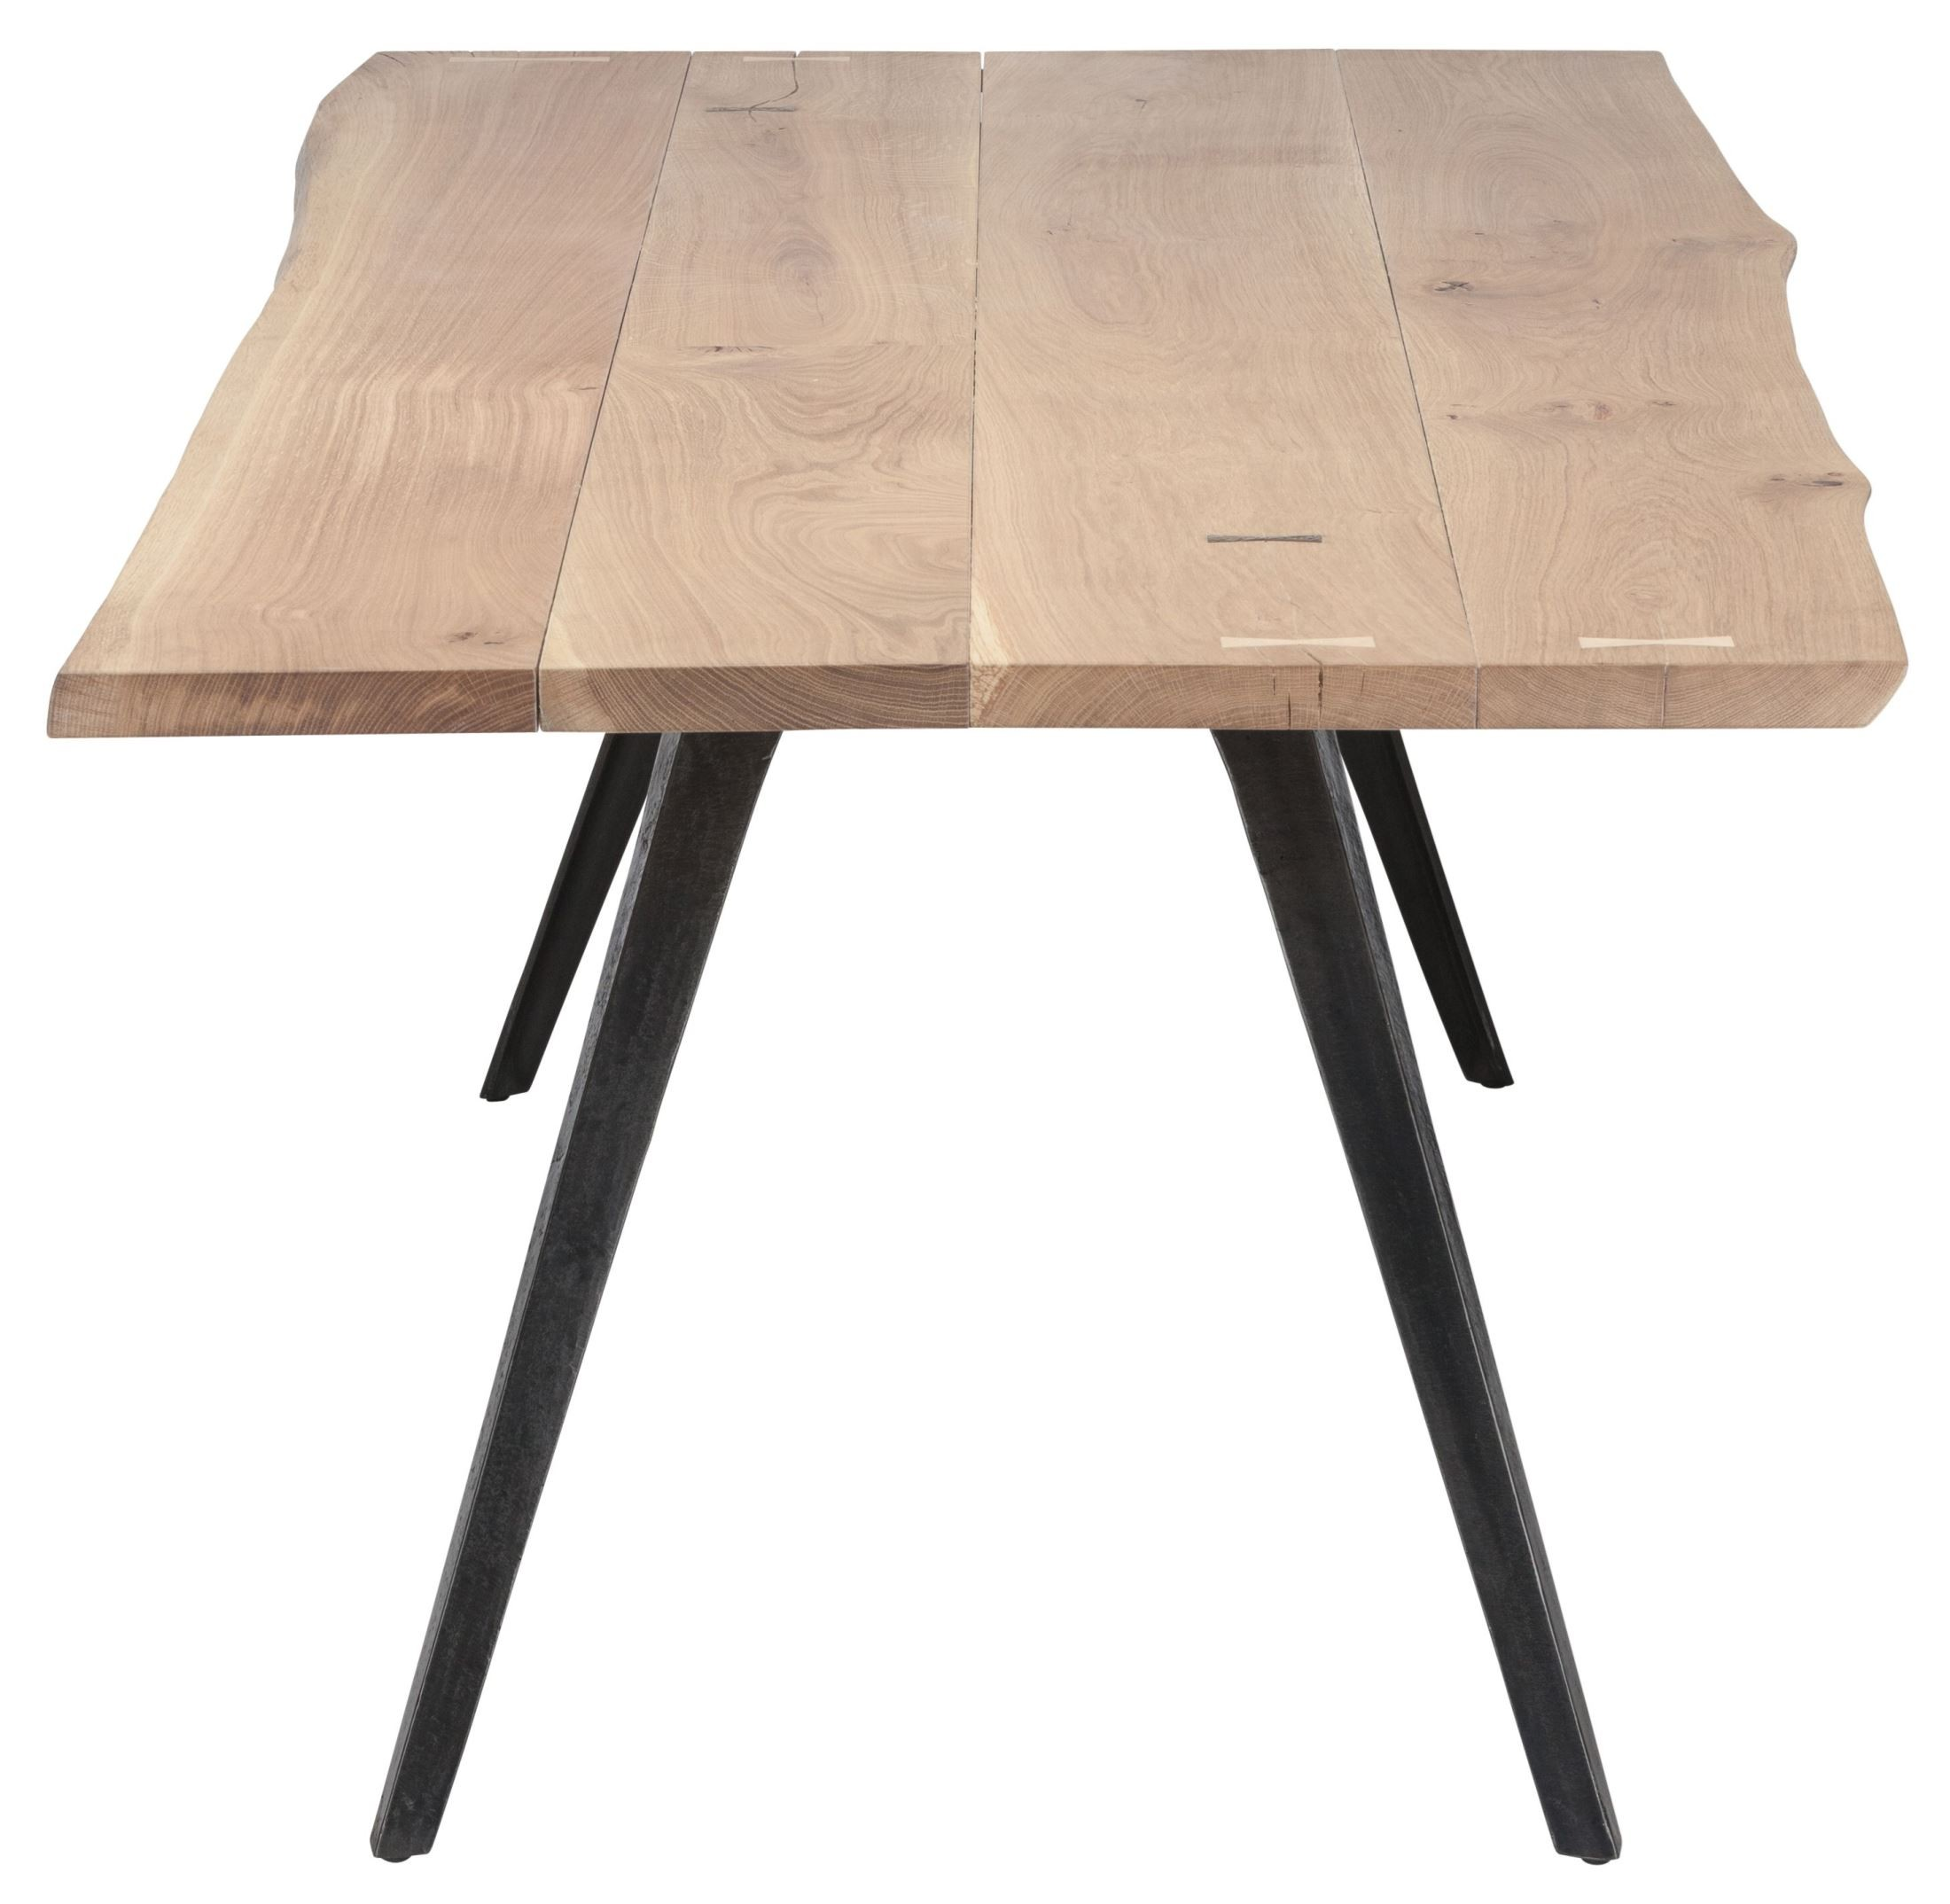 Vega raw wood dining table hgsr nuevo